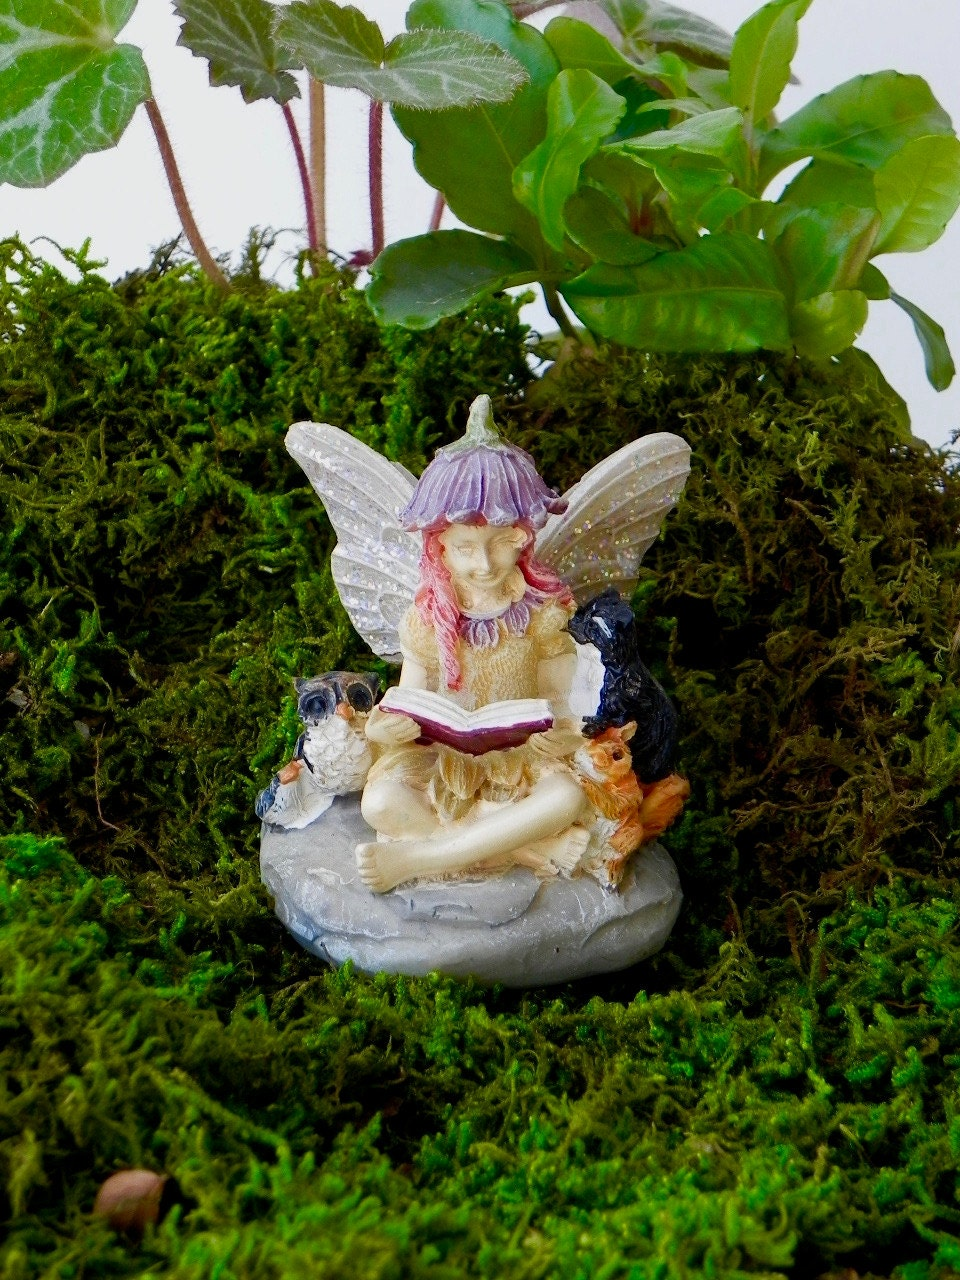 Fairy garden fairy reading book figurine miniature garden for Fairy garden figurines